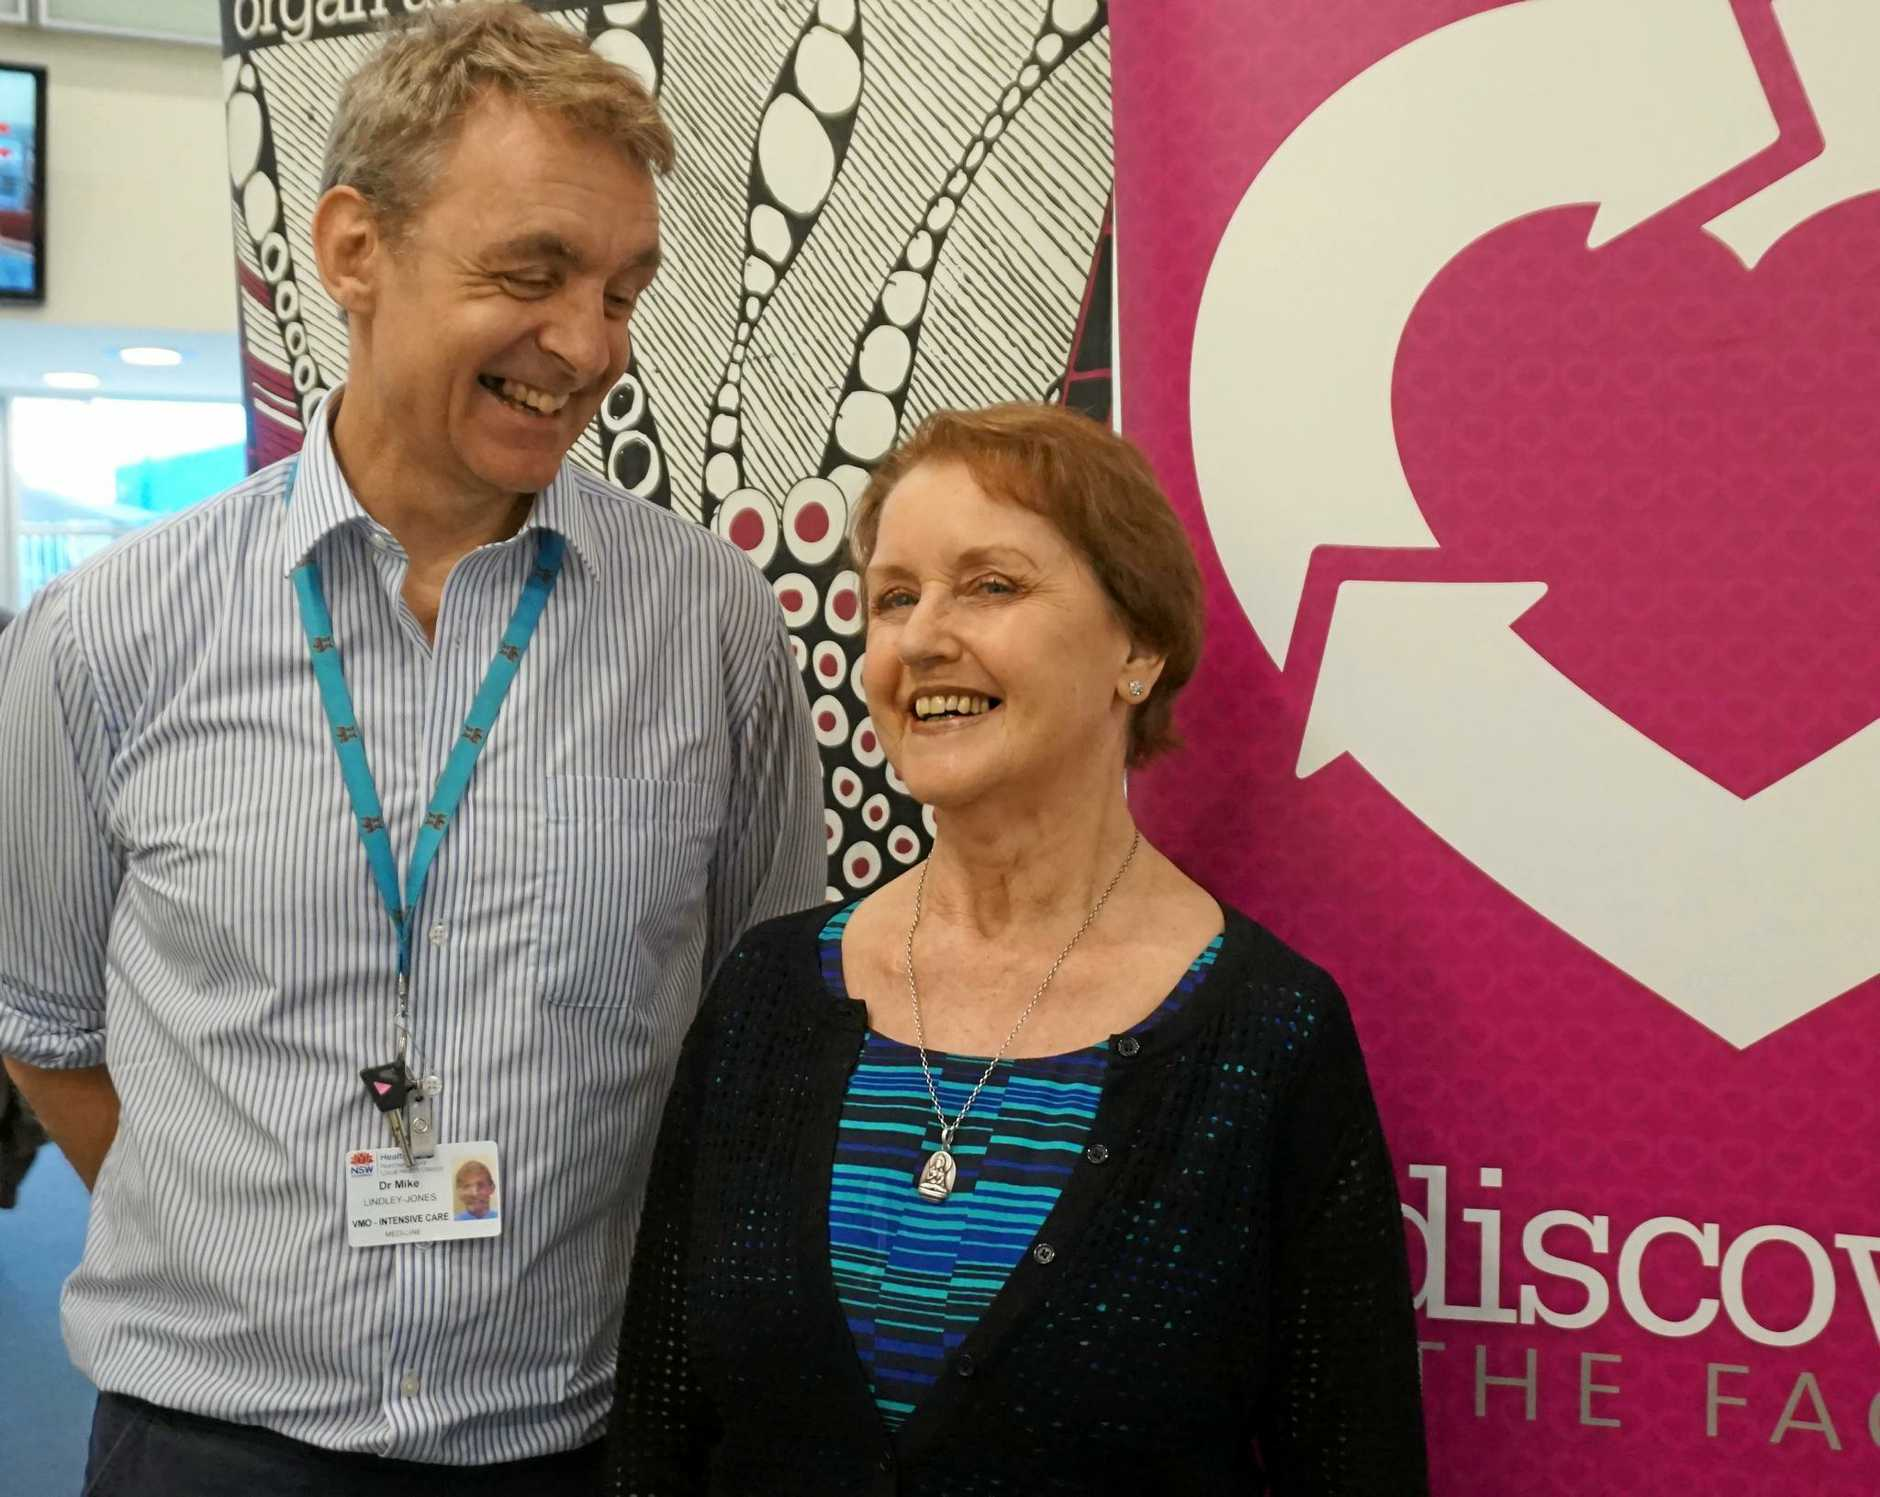 Tweed Hospital Intensive Care Unit lead Dr Mike Lindley-Jones with kidney transplant recipient Susi Daunton, of Stokers Siding.